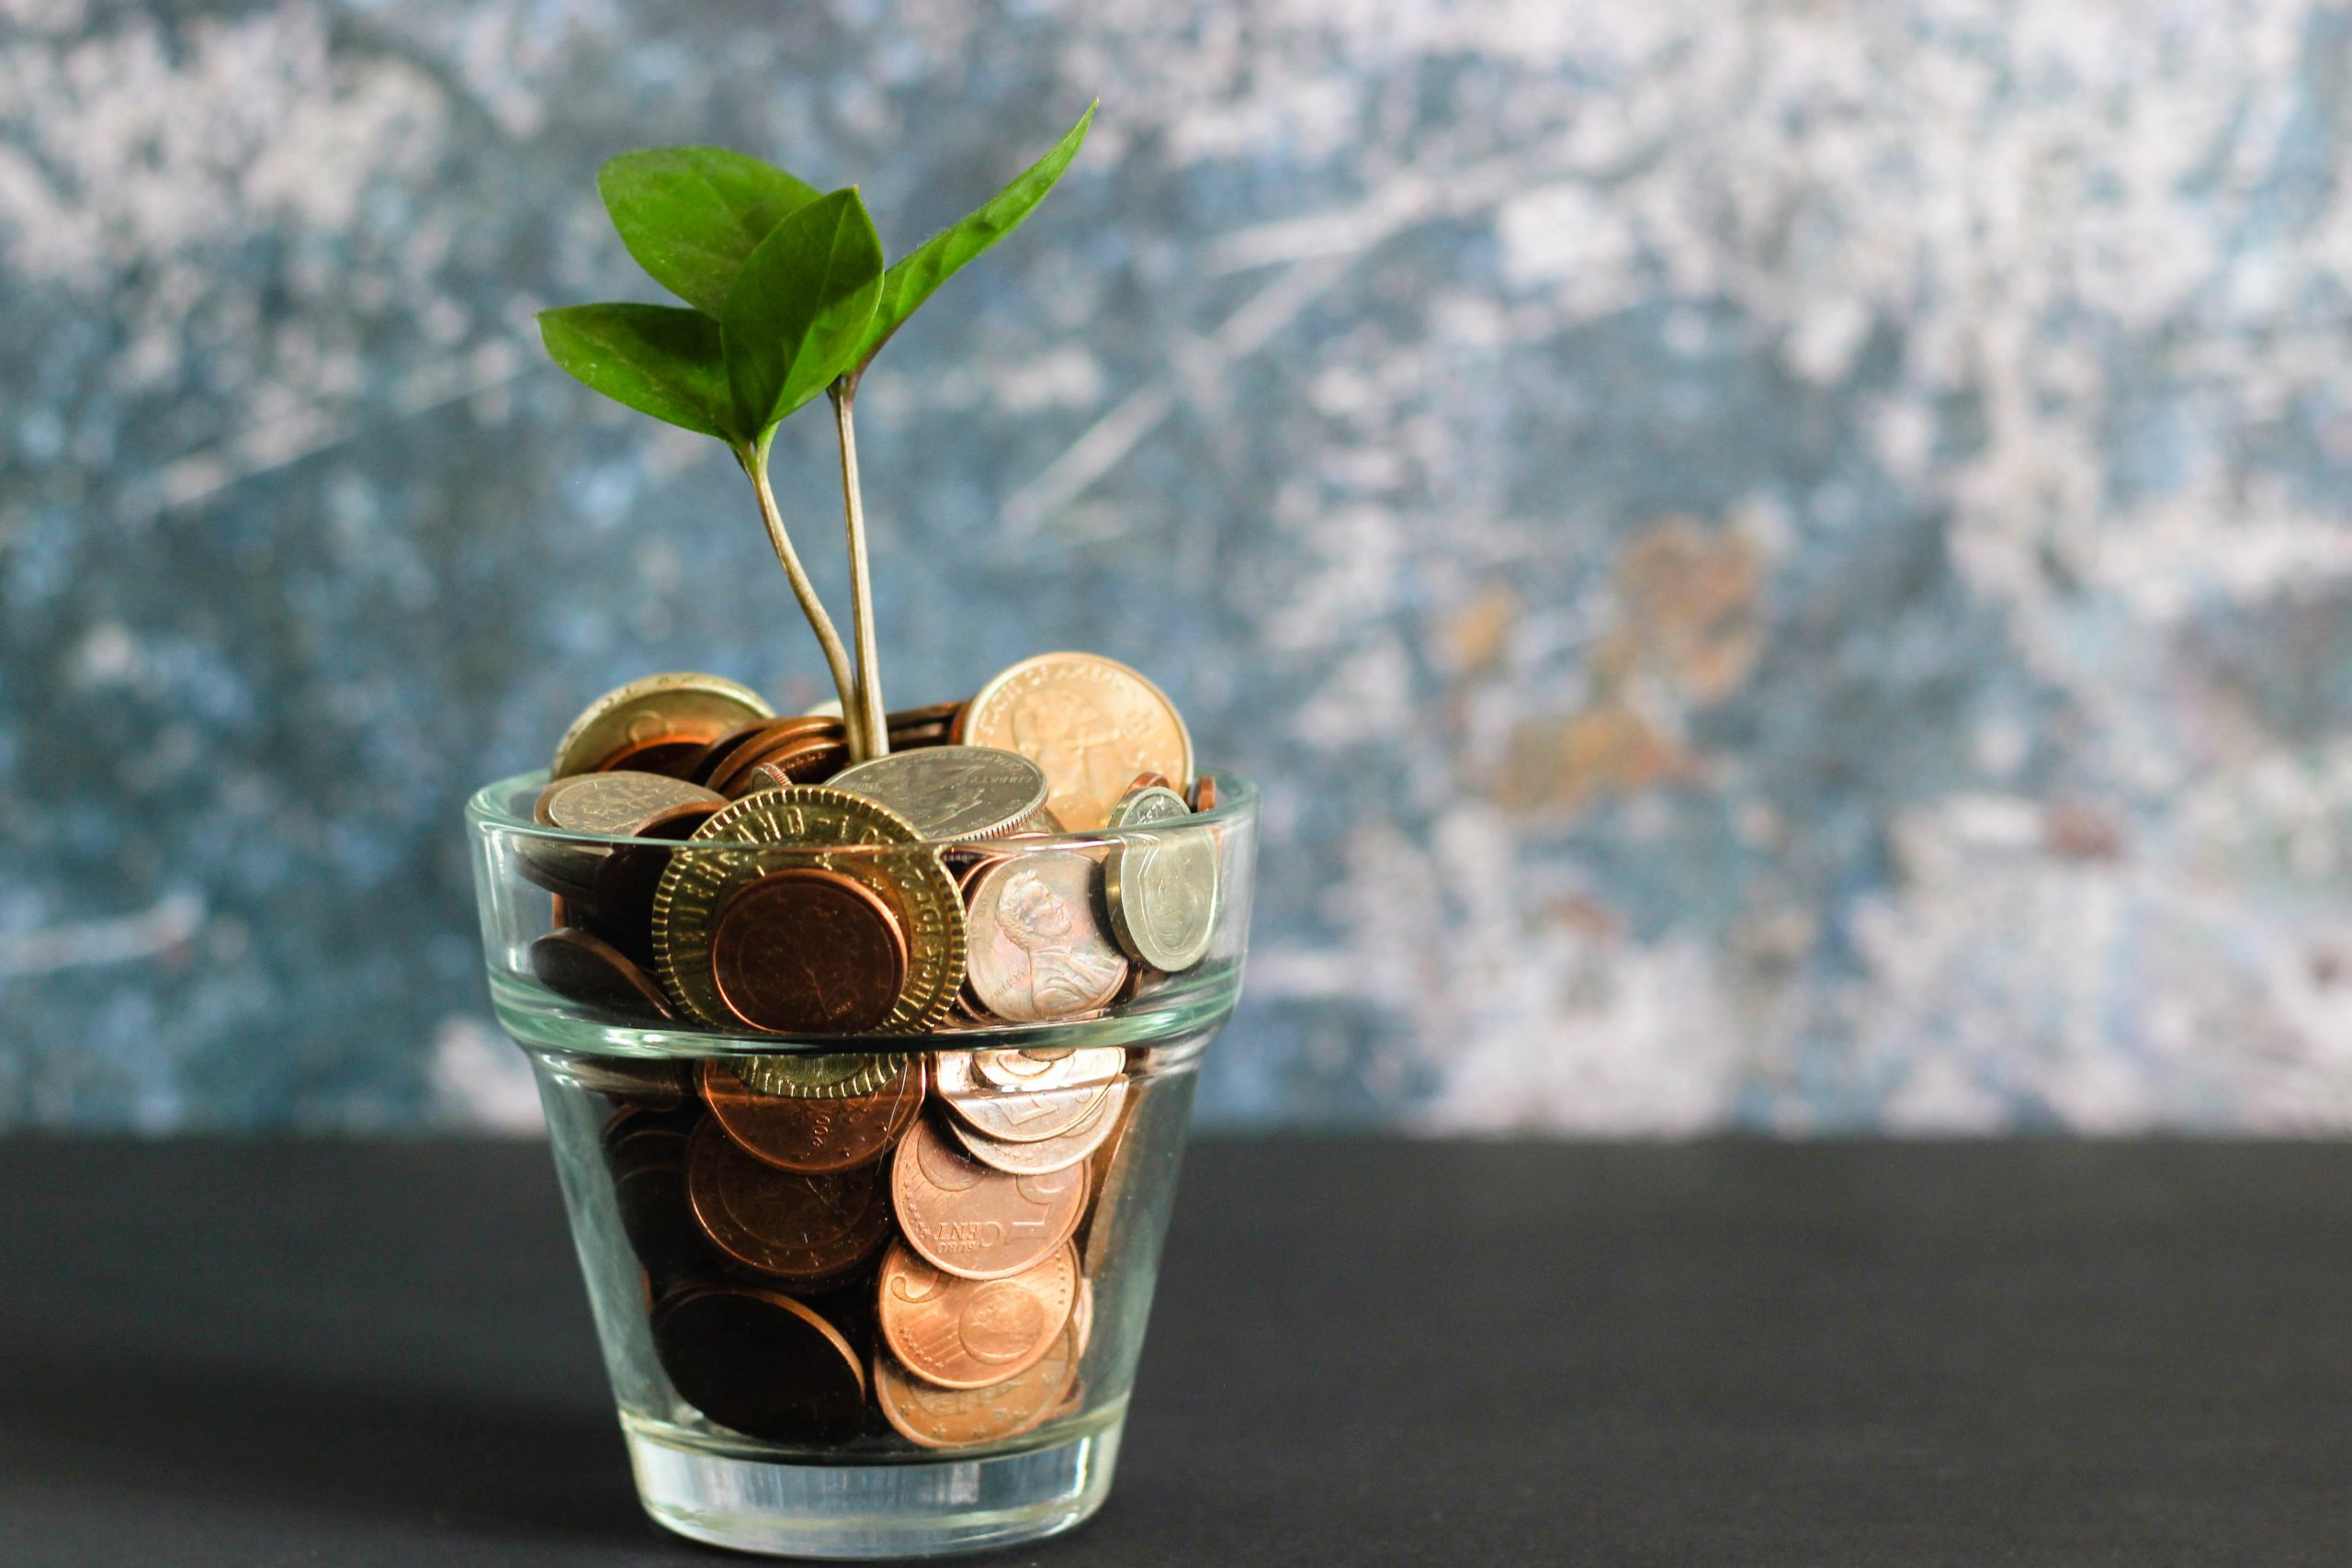 a potted plant filled with money and coins